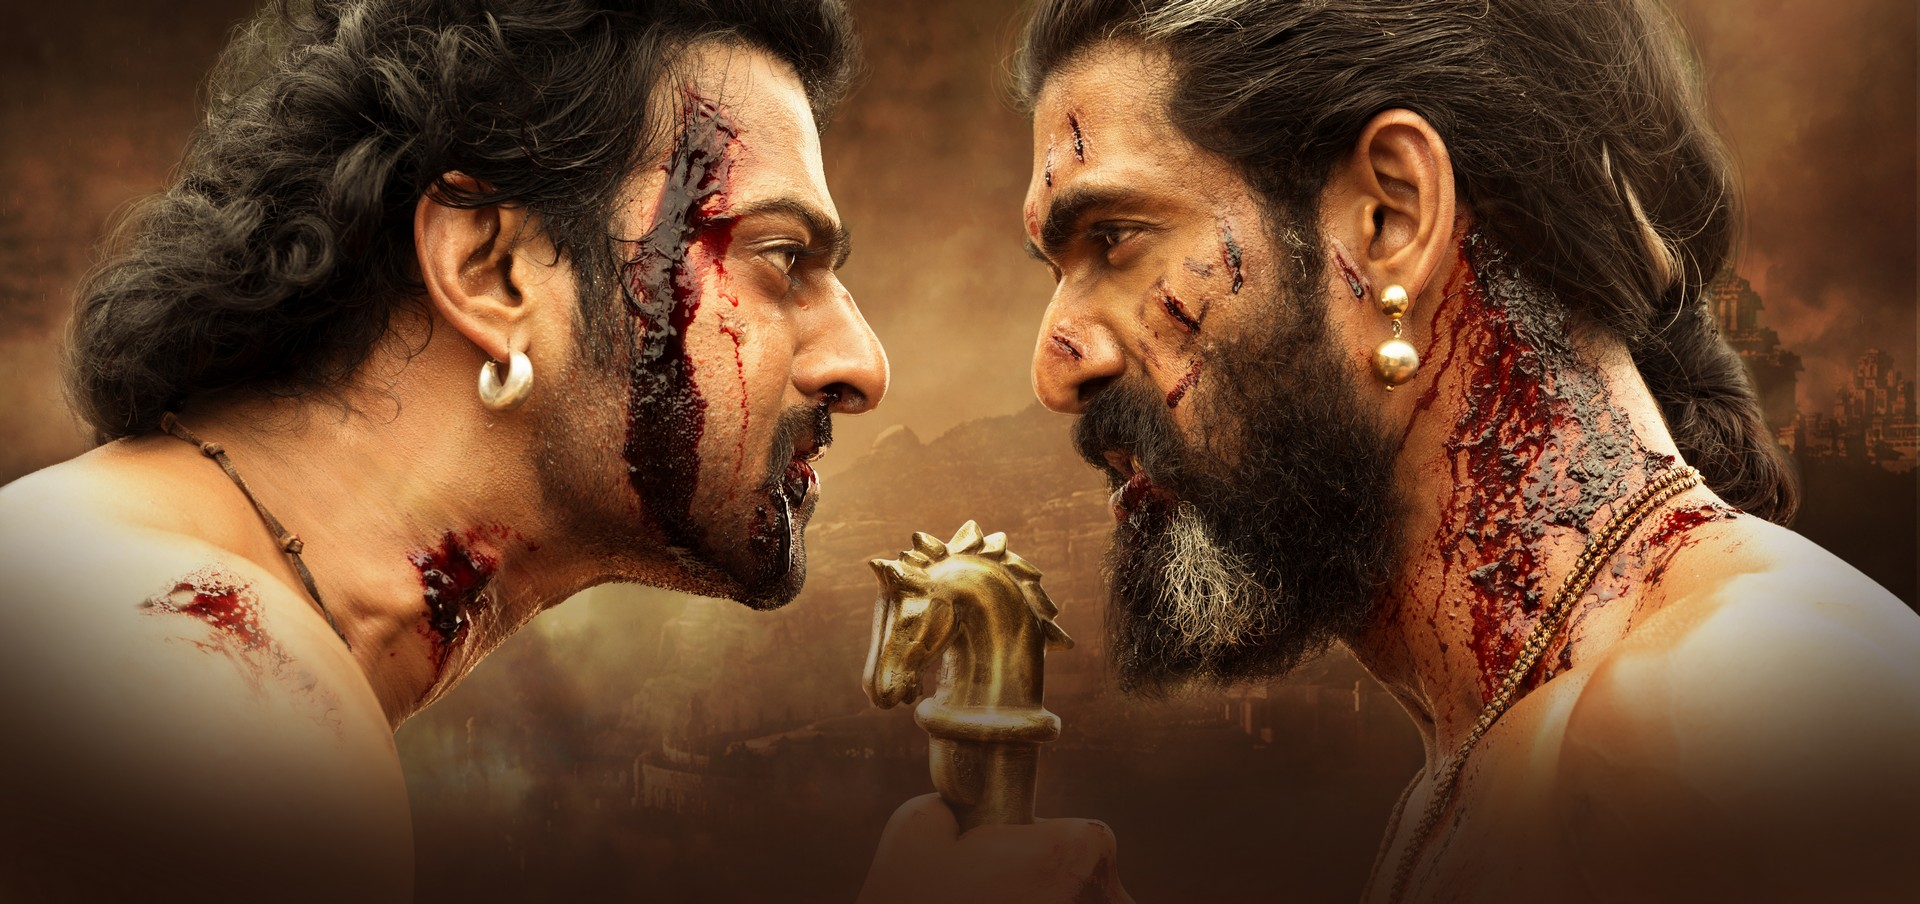 Prabhas and Rana Daggubati in Baahubali